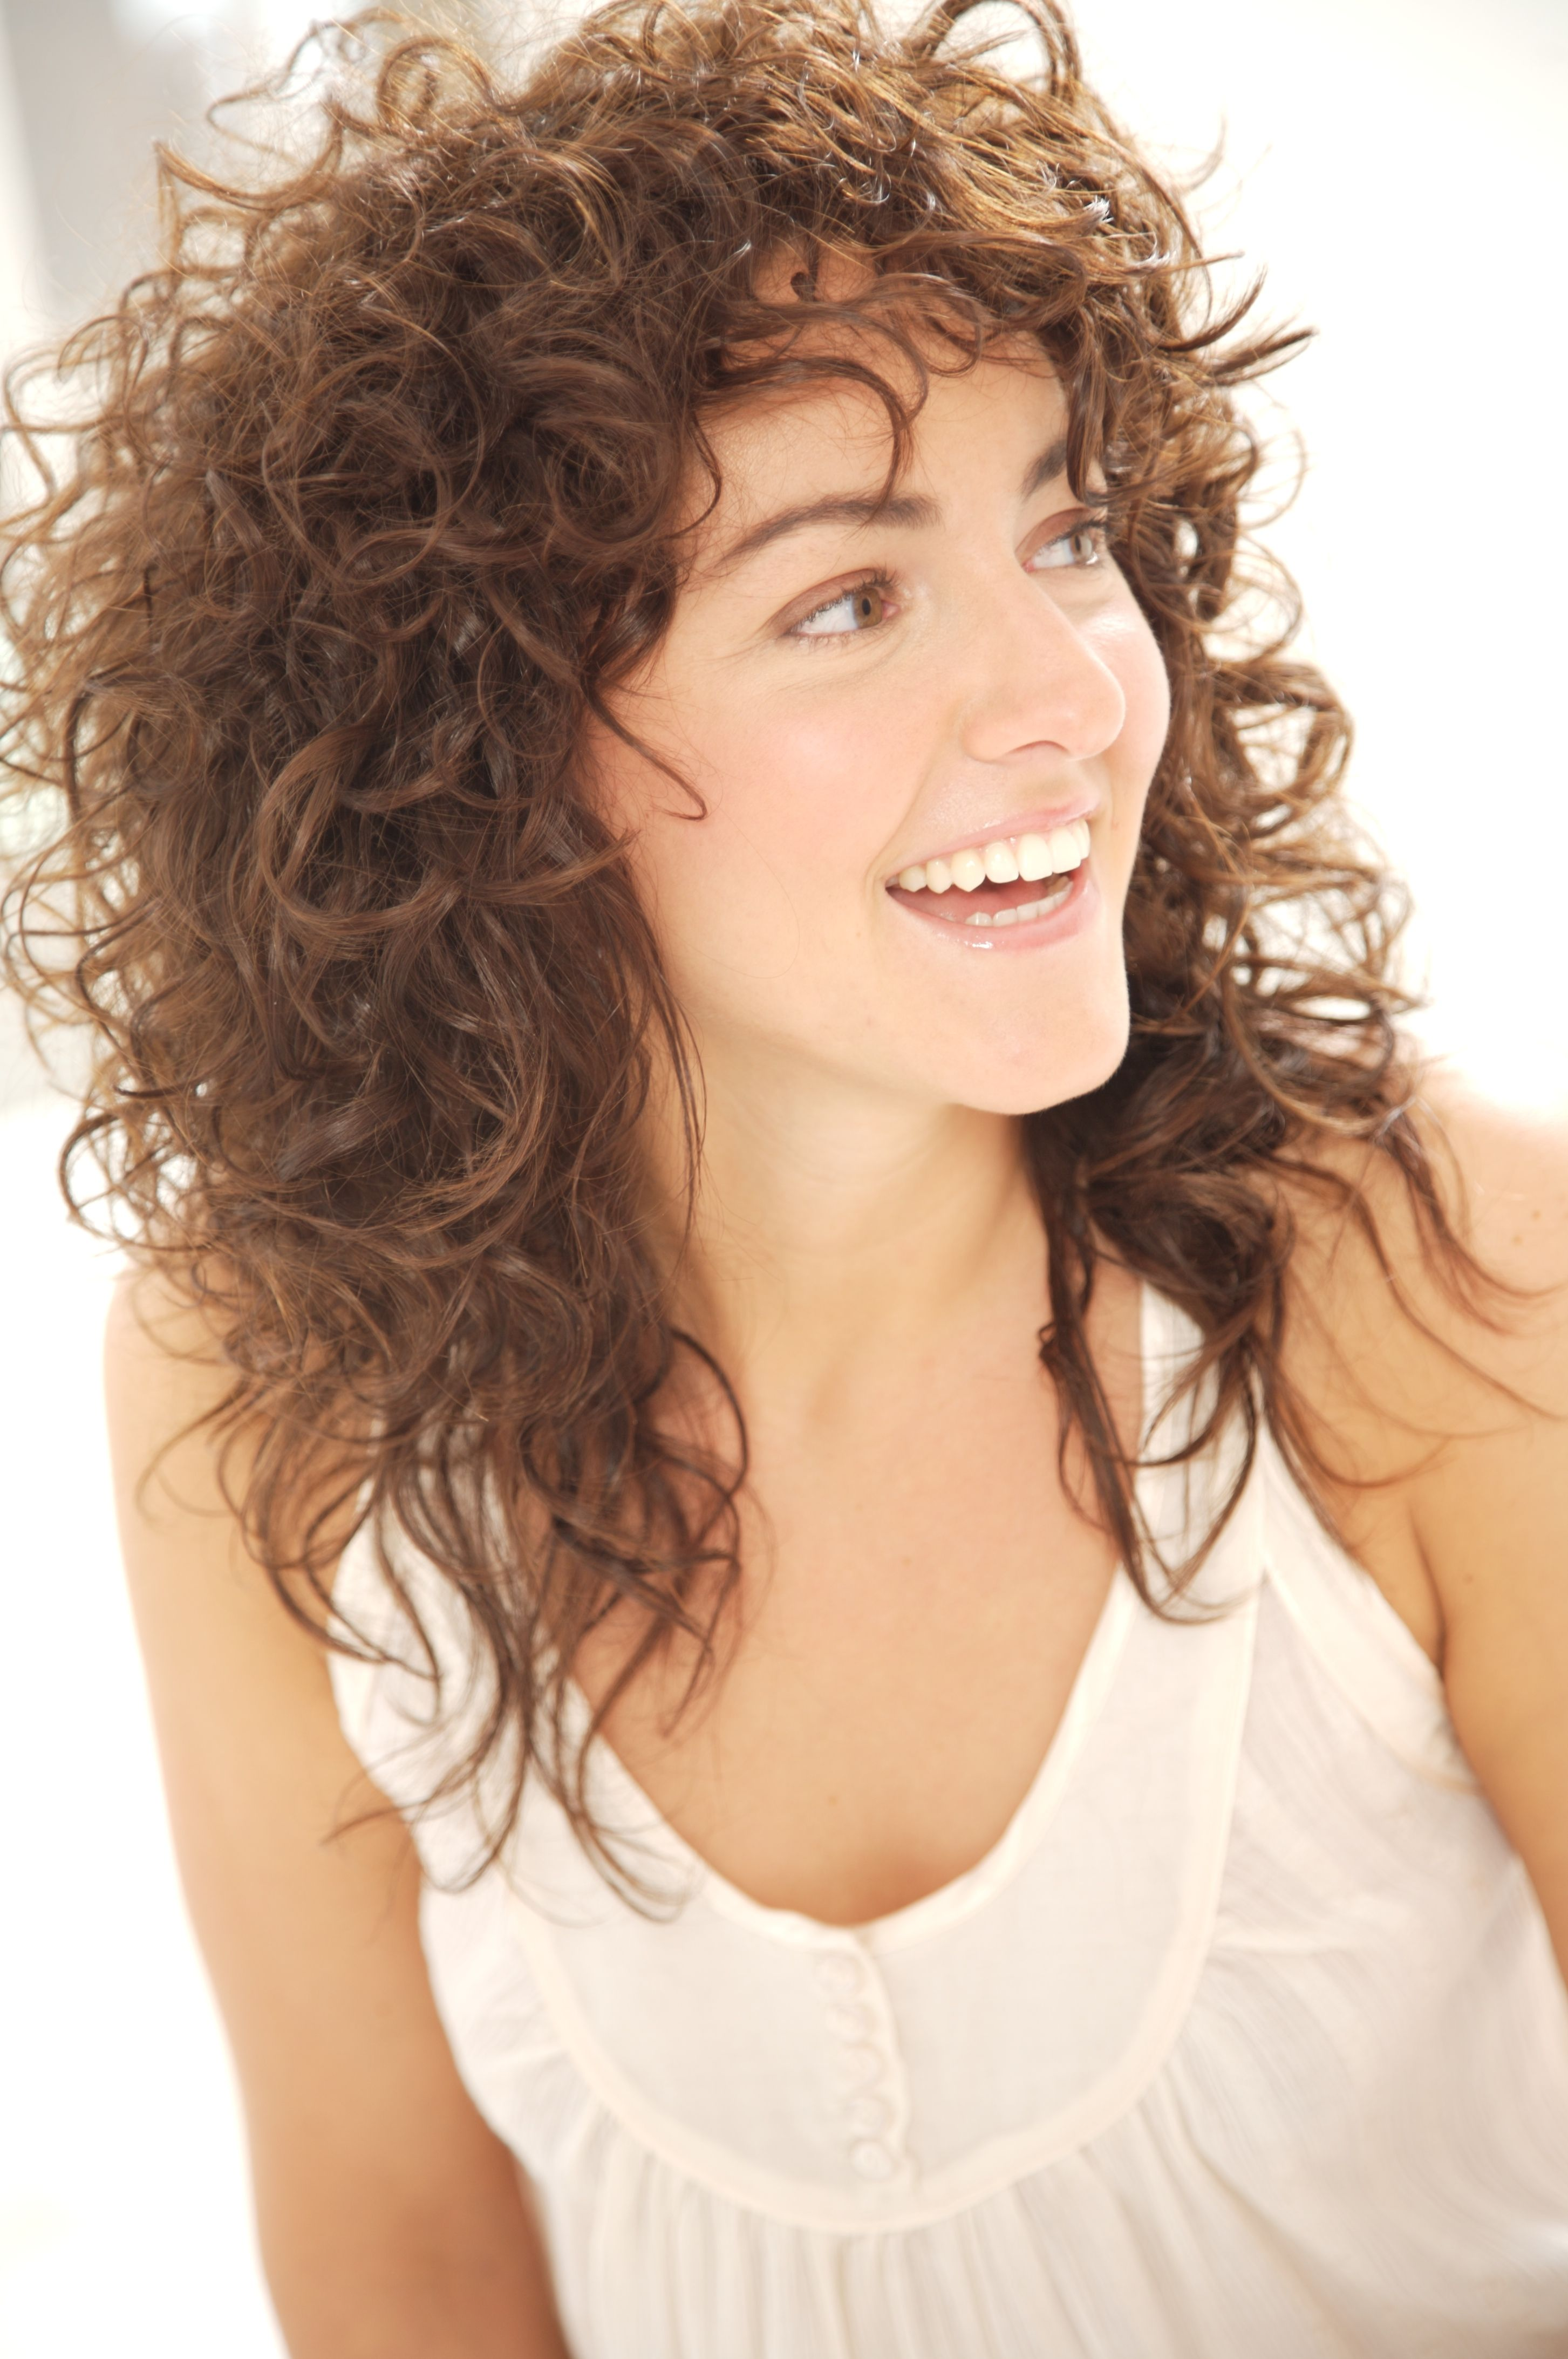 What if you've got curly hair and would love to wear lush, healthy, flouncy ringlets without the frizz natural curls can create? For Nick's Arrojo's personal tips and tricks, click style notes. -- ...